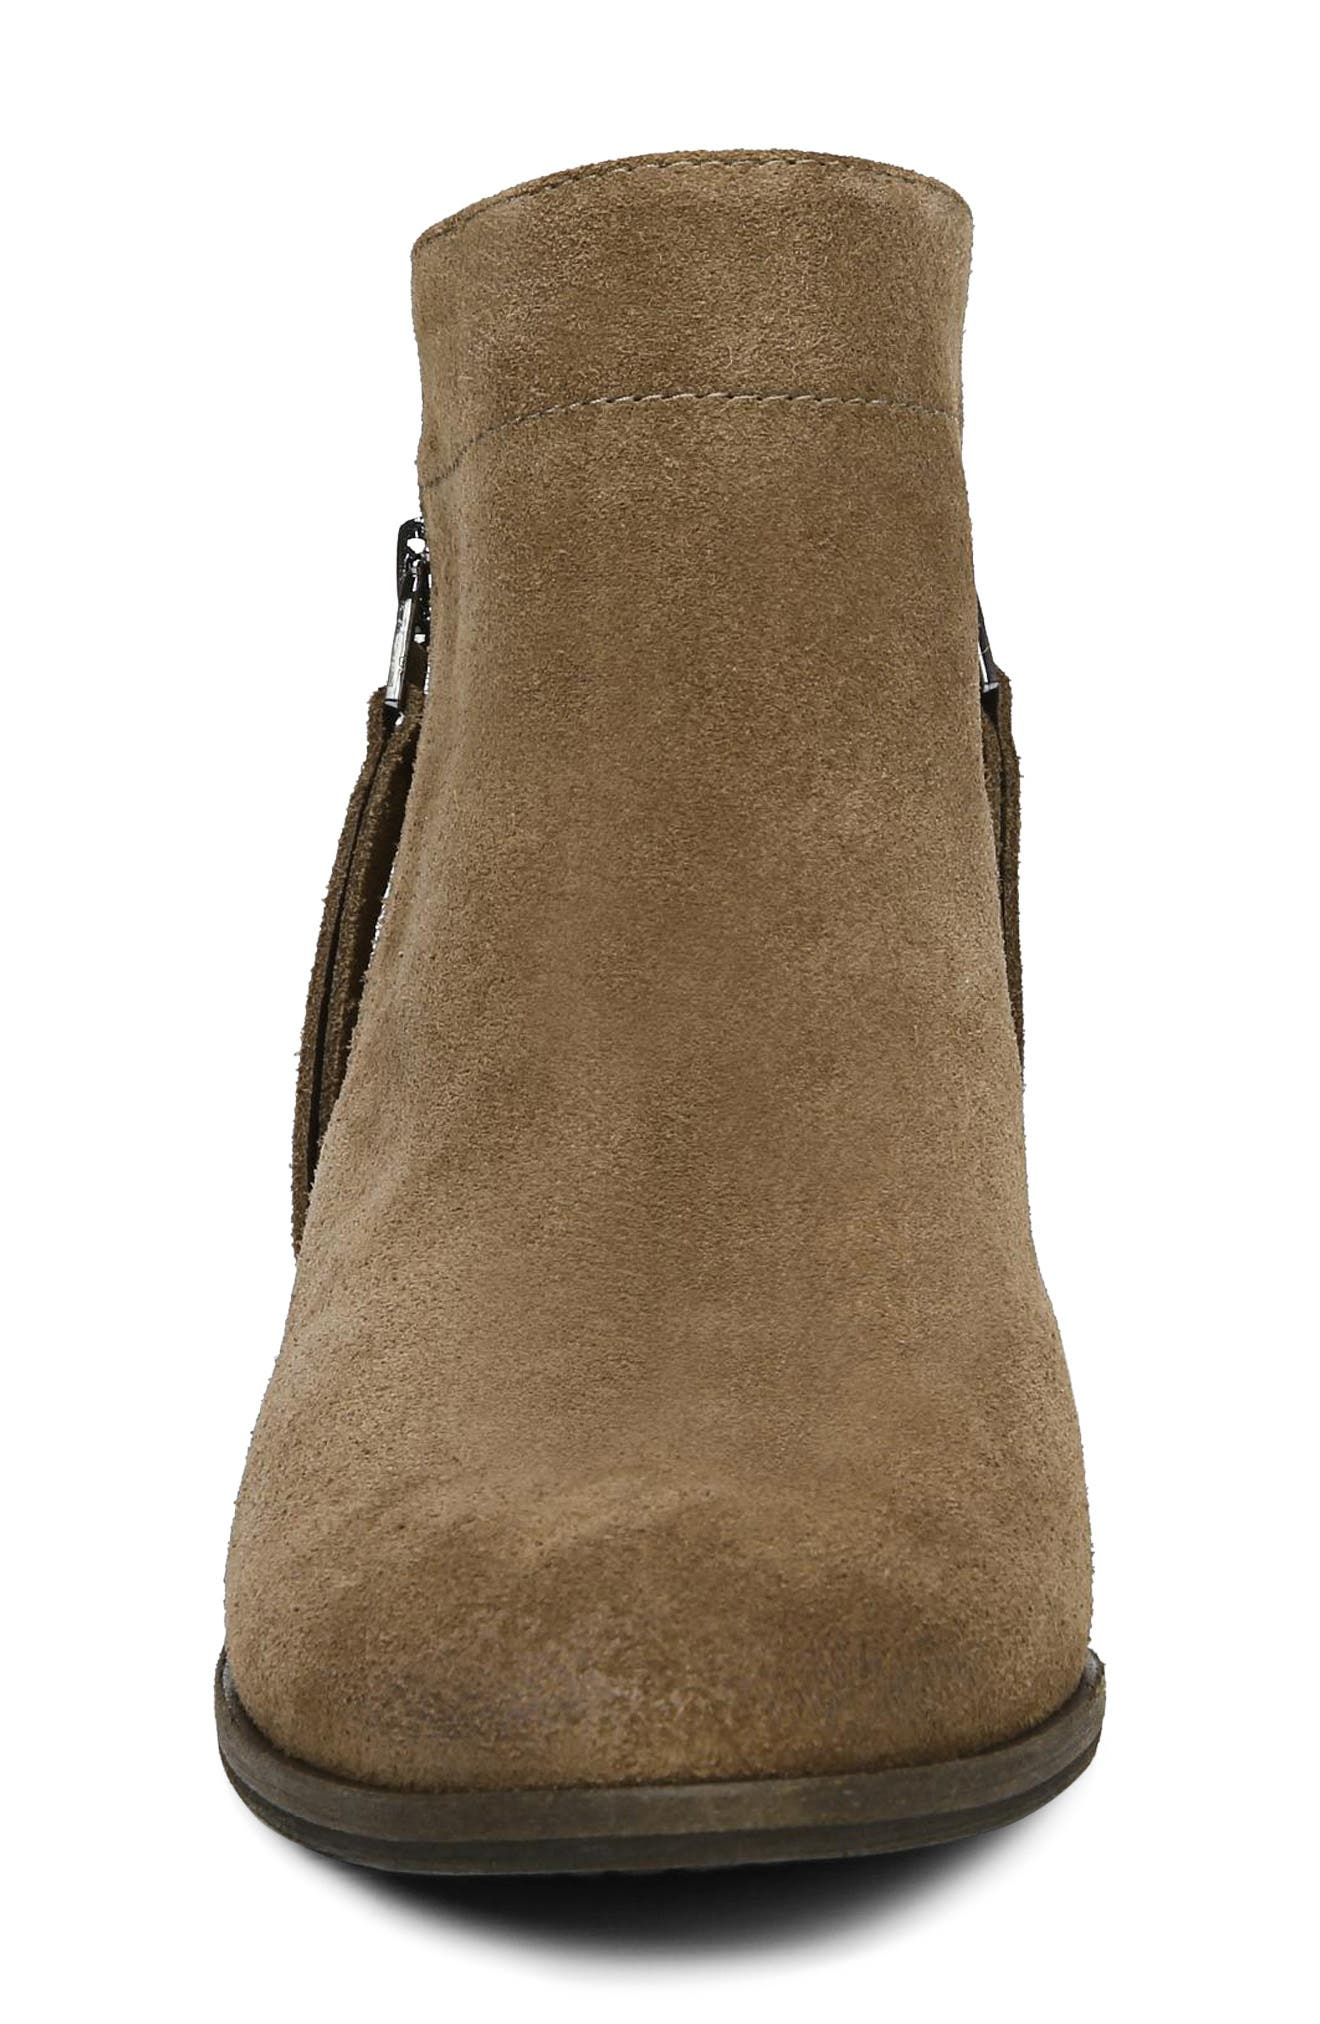 Packer Bootie,                             Alternate thumbnail 4, color,                             DARK TAUPE SUEDE LEATHER